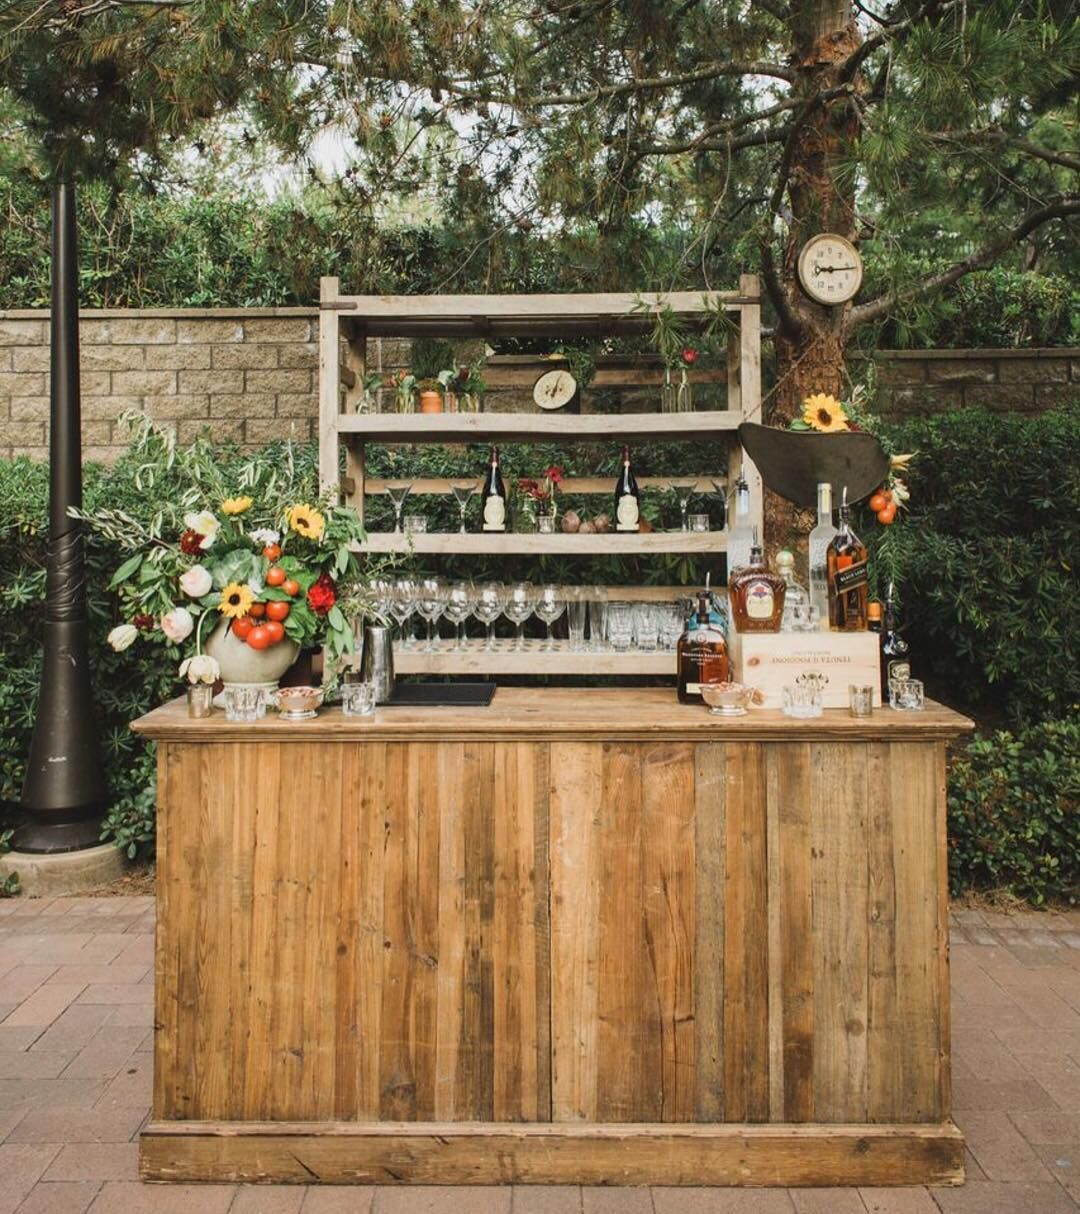 What better than our rustic bar stocked with the finest vino for an Italian festa designed by @crosbyandjon